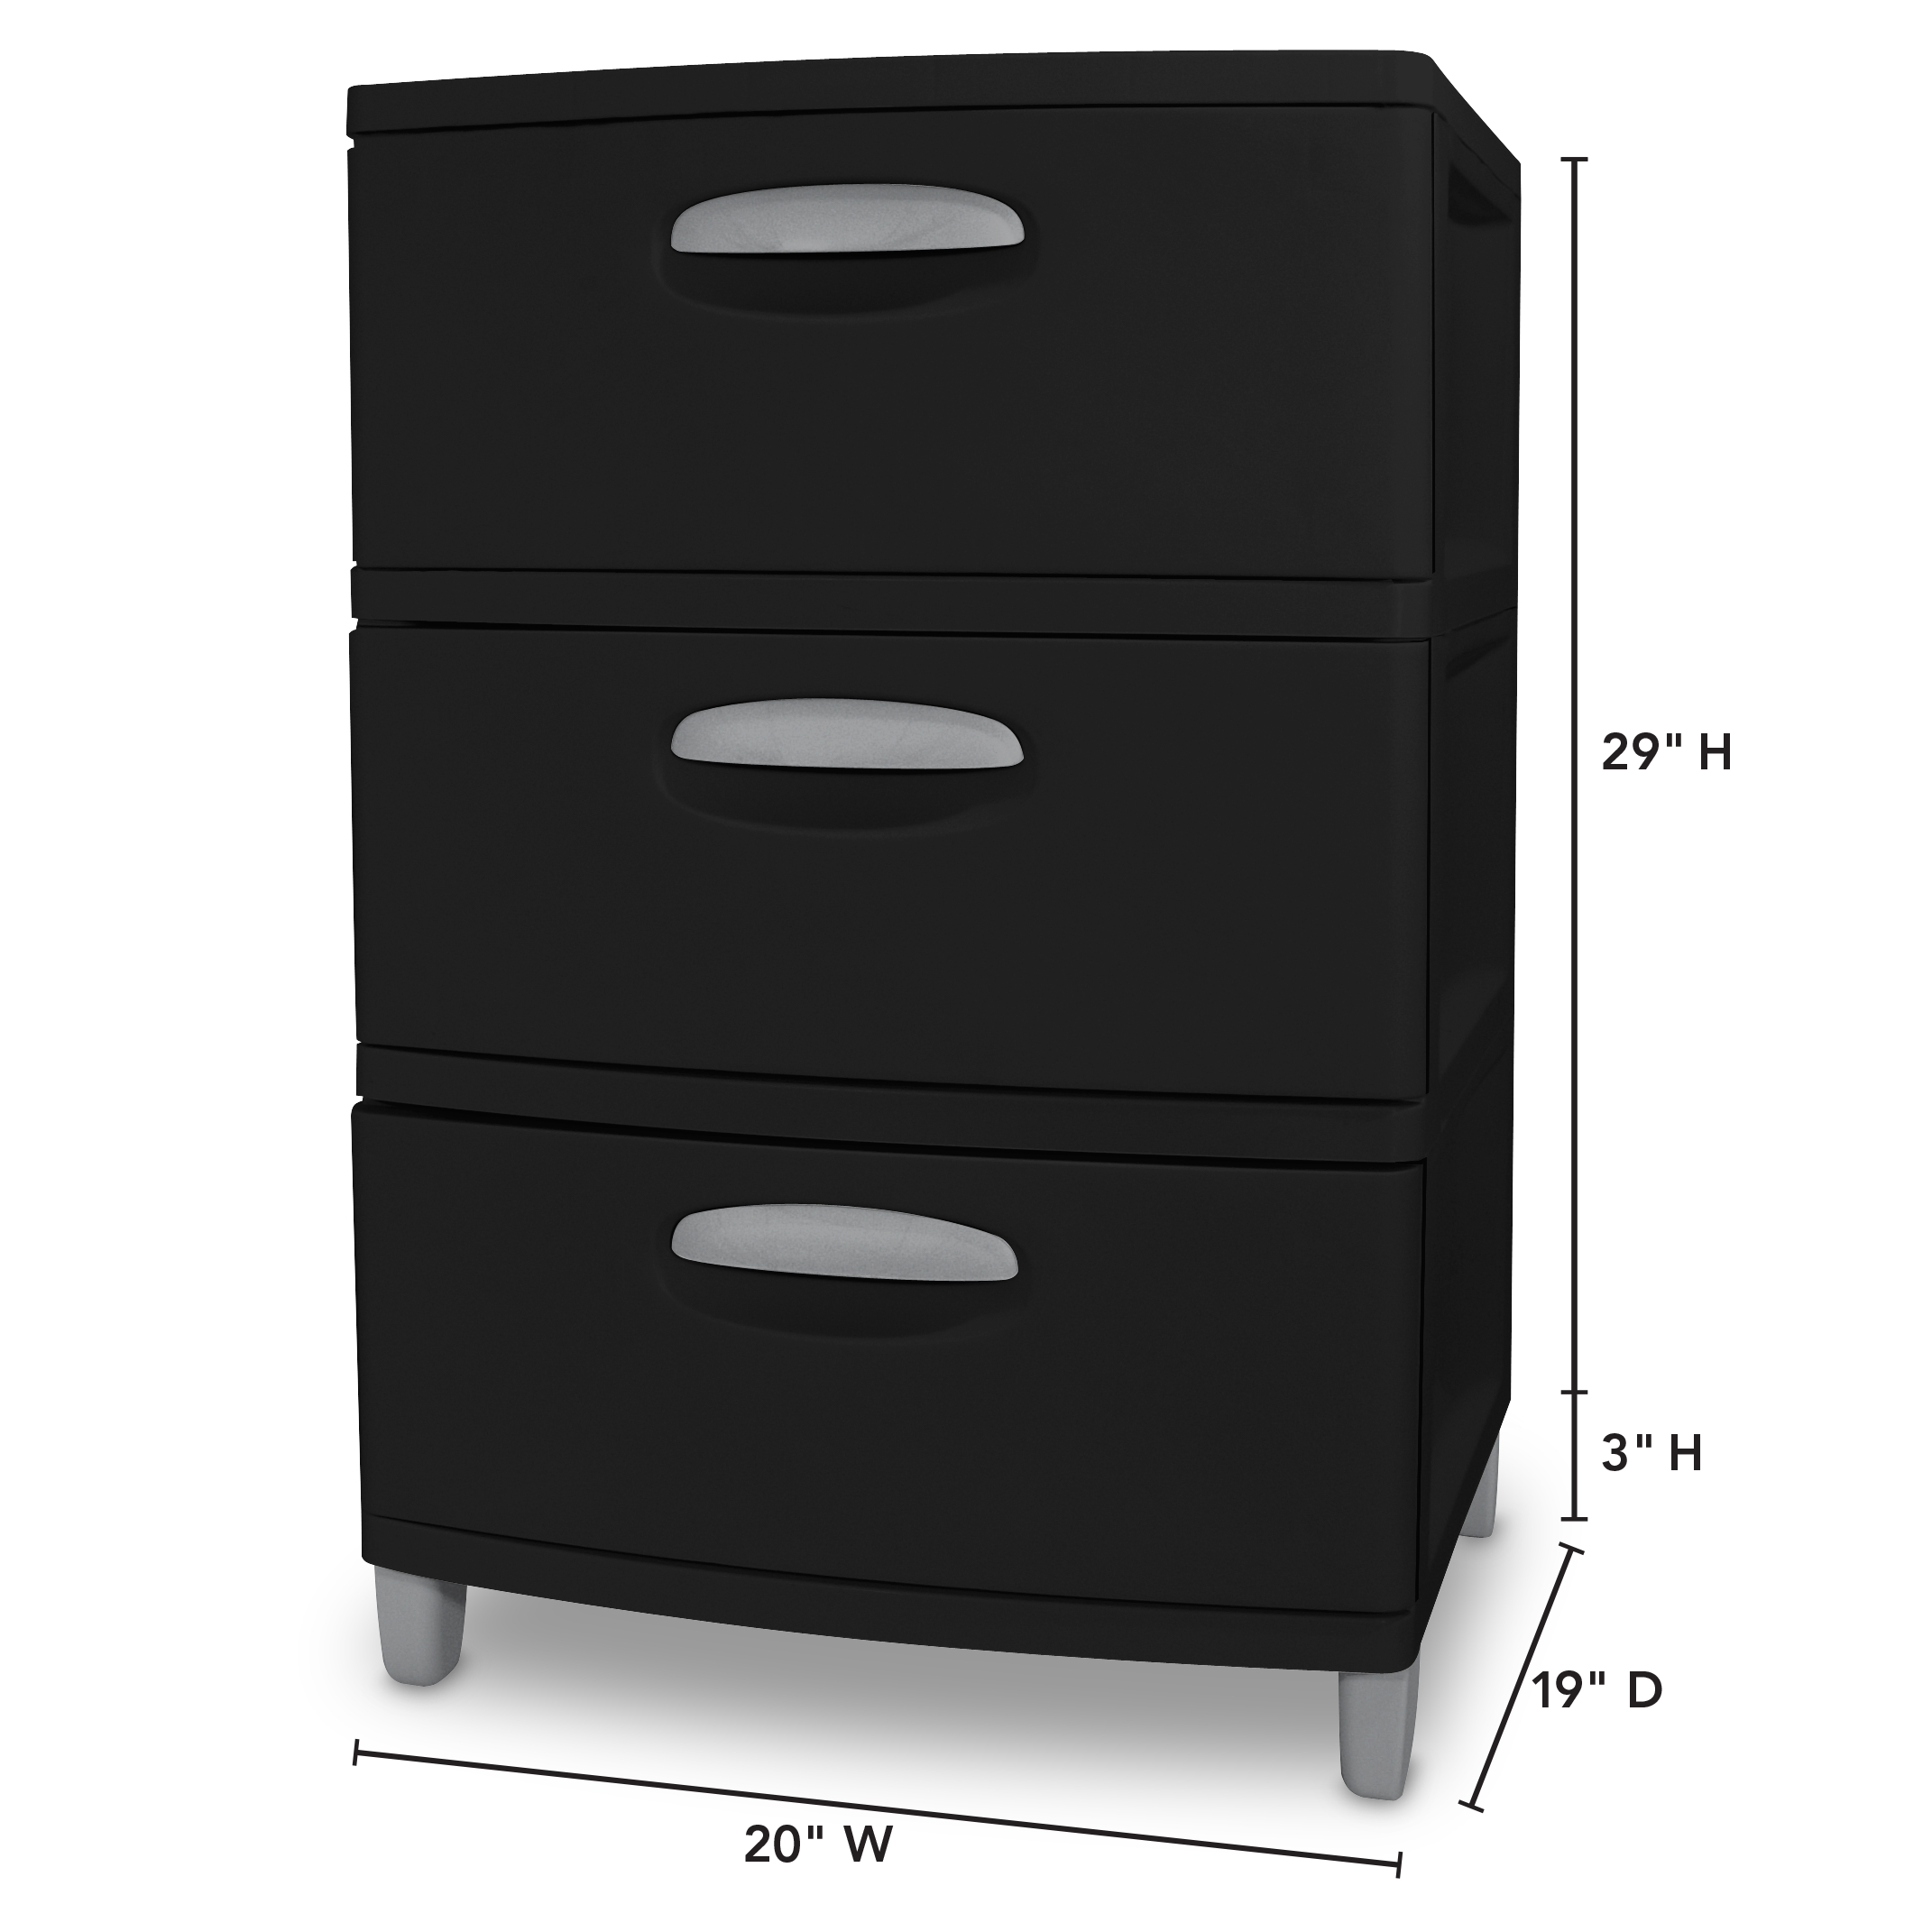 inc letter collections vertical drawer white cabinet filing ecommersify size cabinets lvory in fireproof file d closed